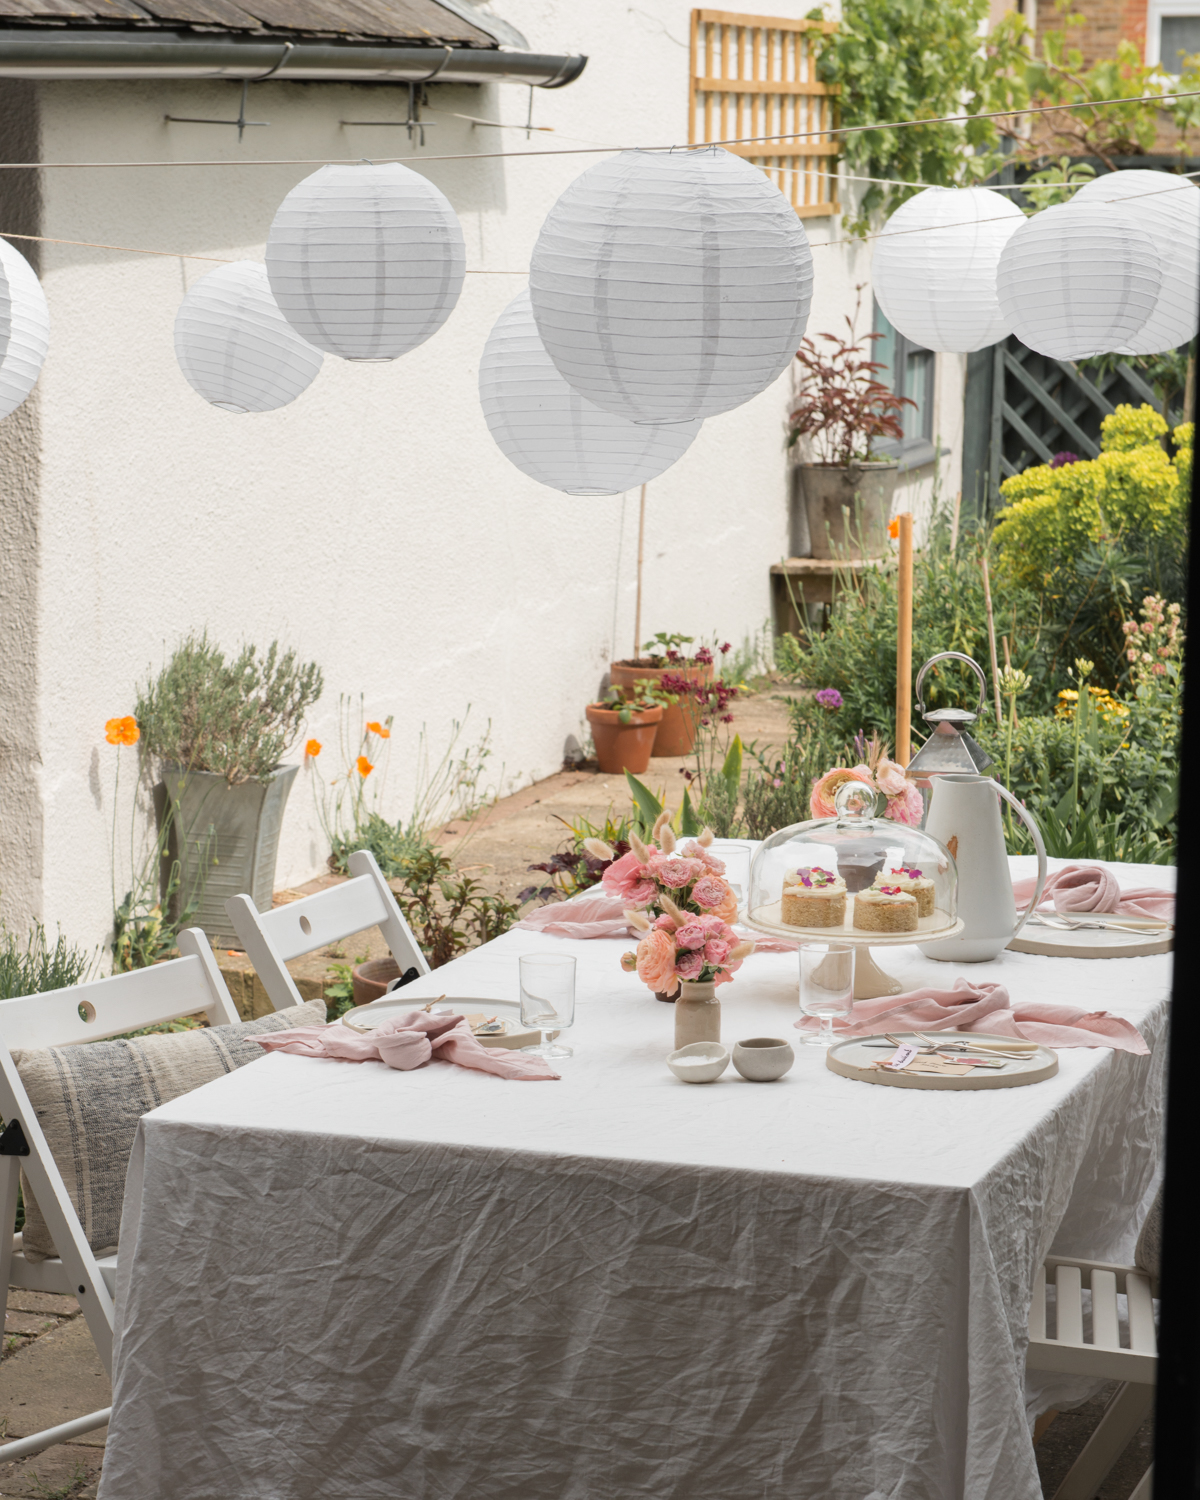 Garden afternoon tea, handmade plates, white paper lanterns, tips from a stylist, stylists tips, how to lay a table,